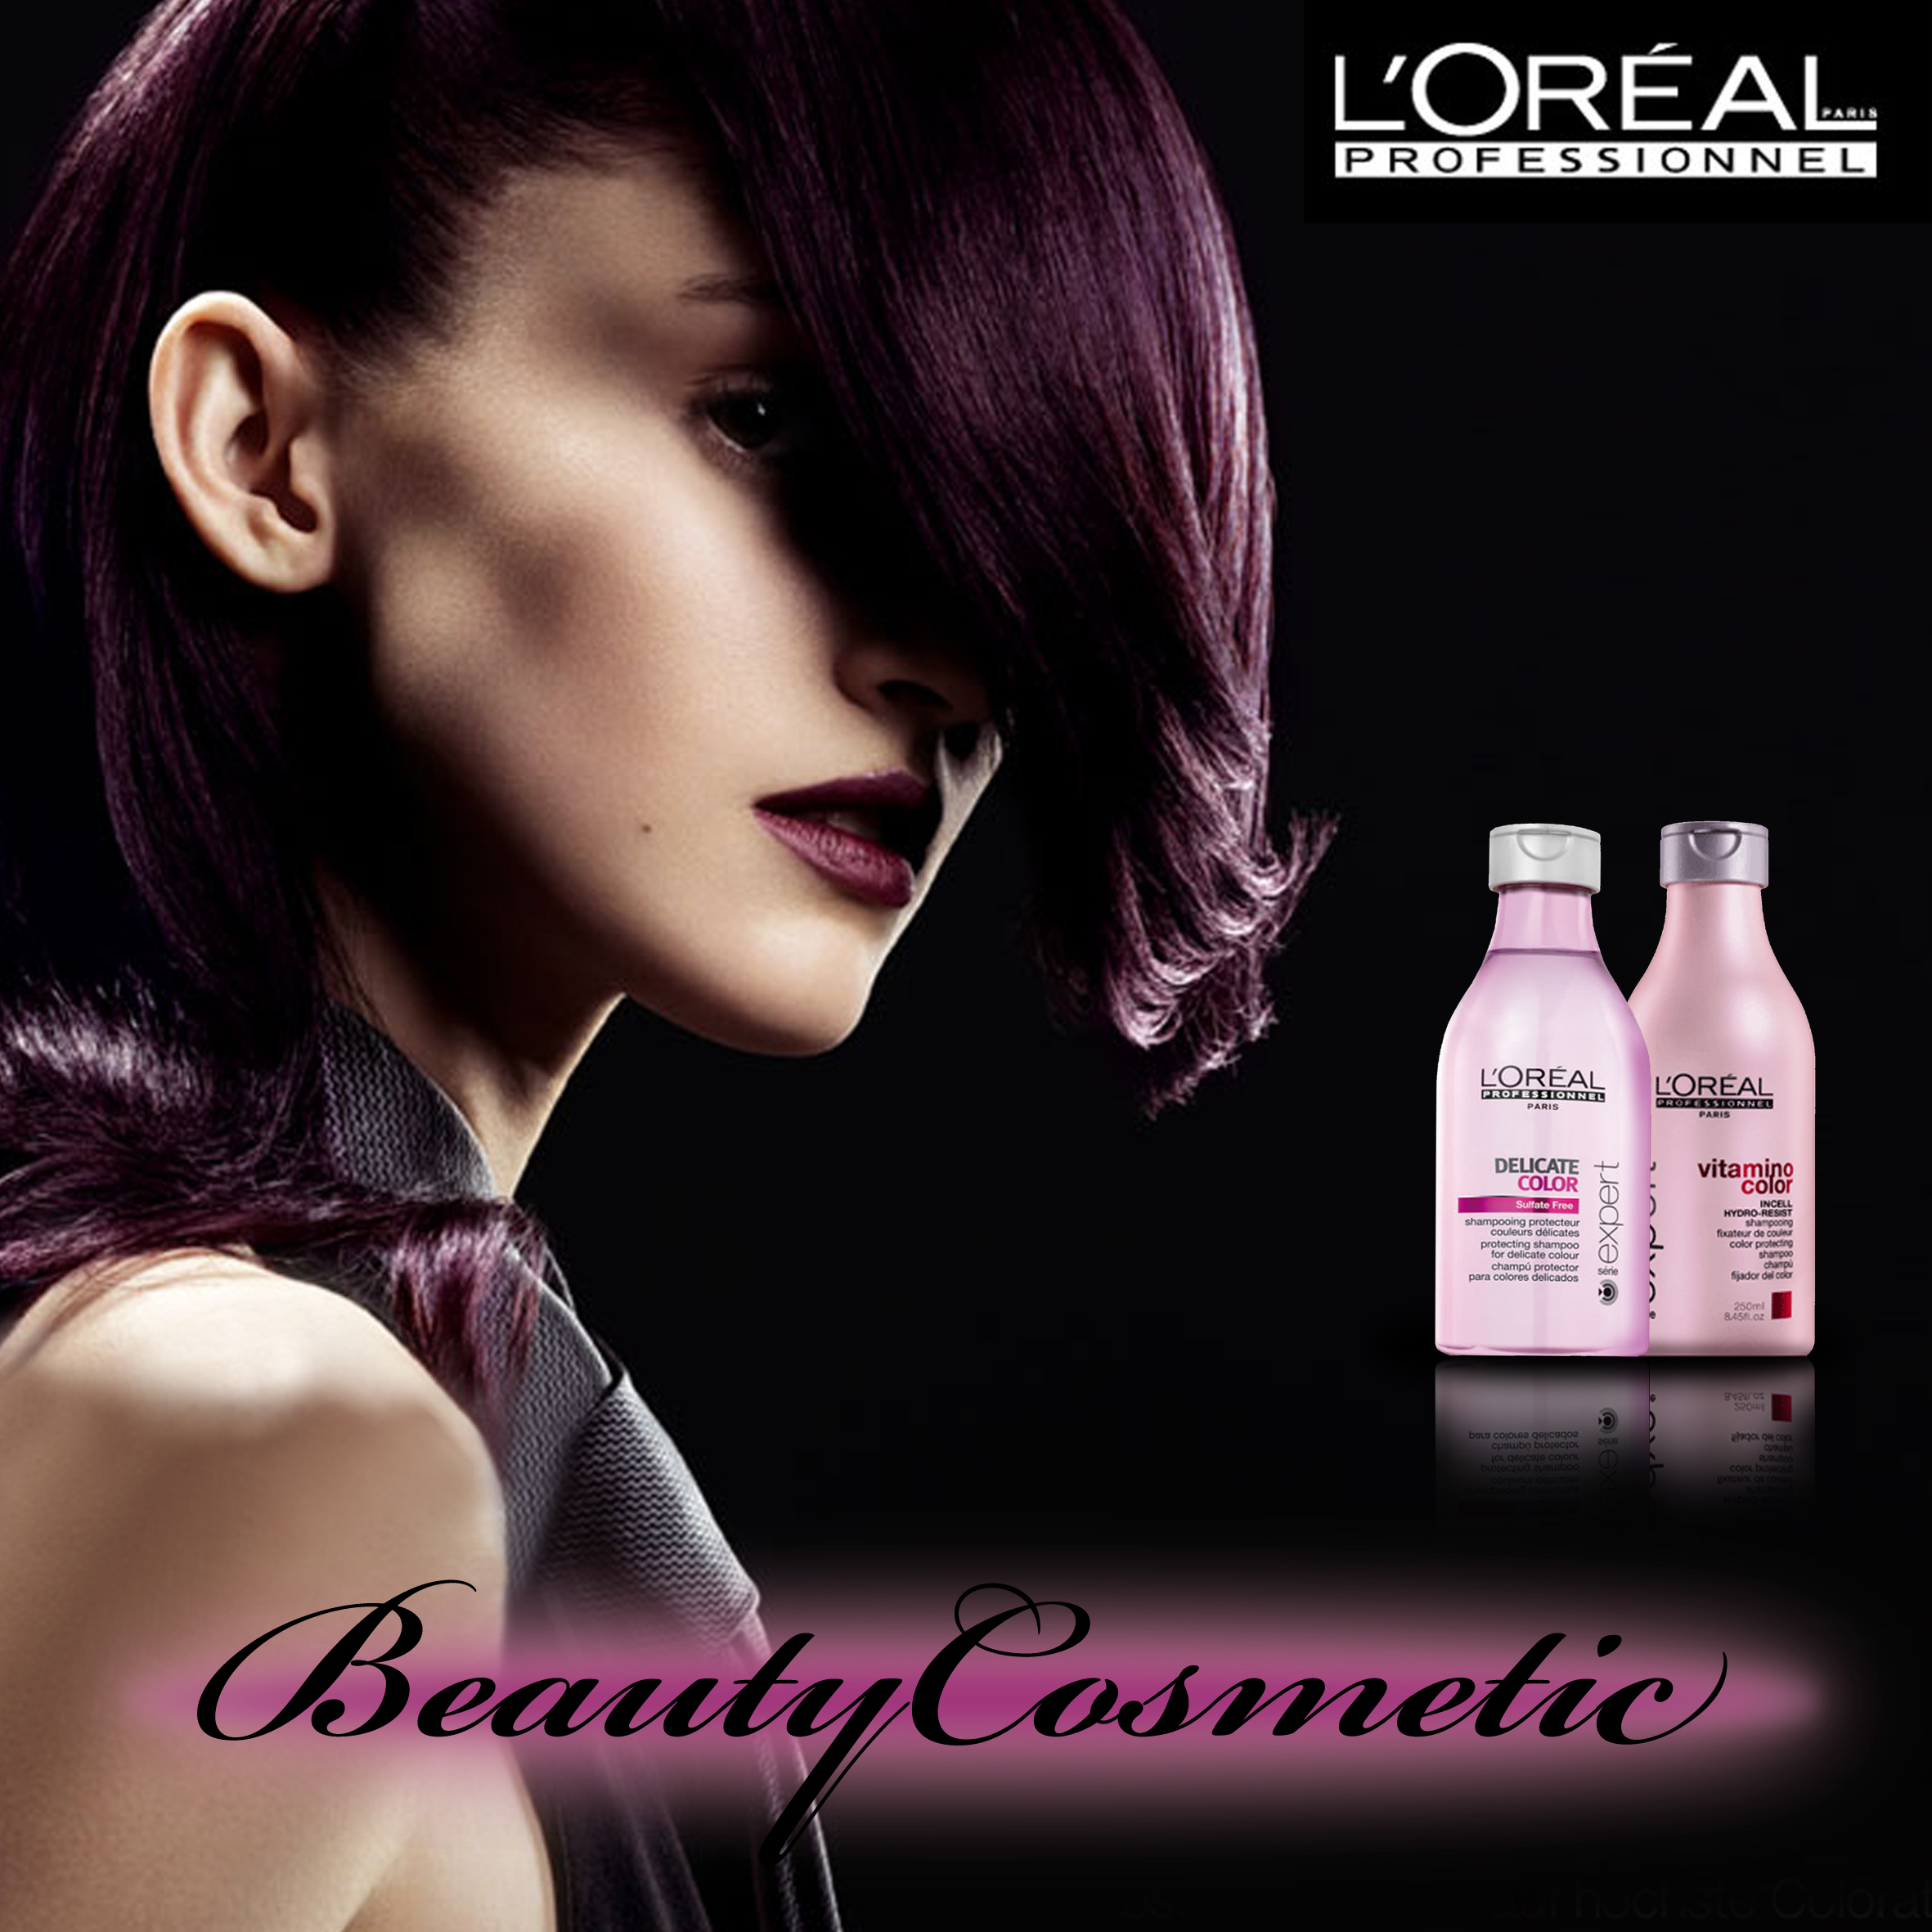 Produse cosmetice profesionale L'oreal sampon, balsam